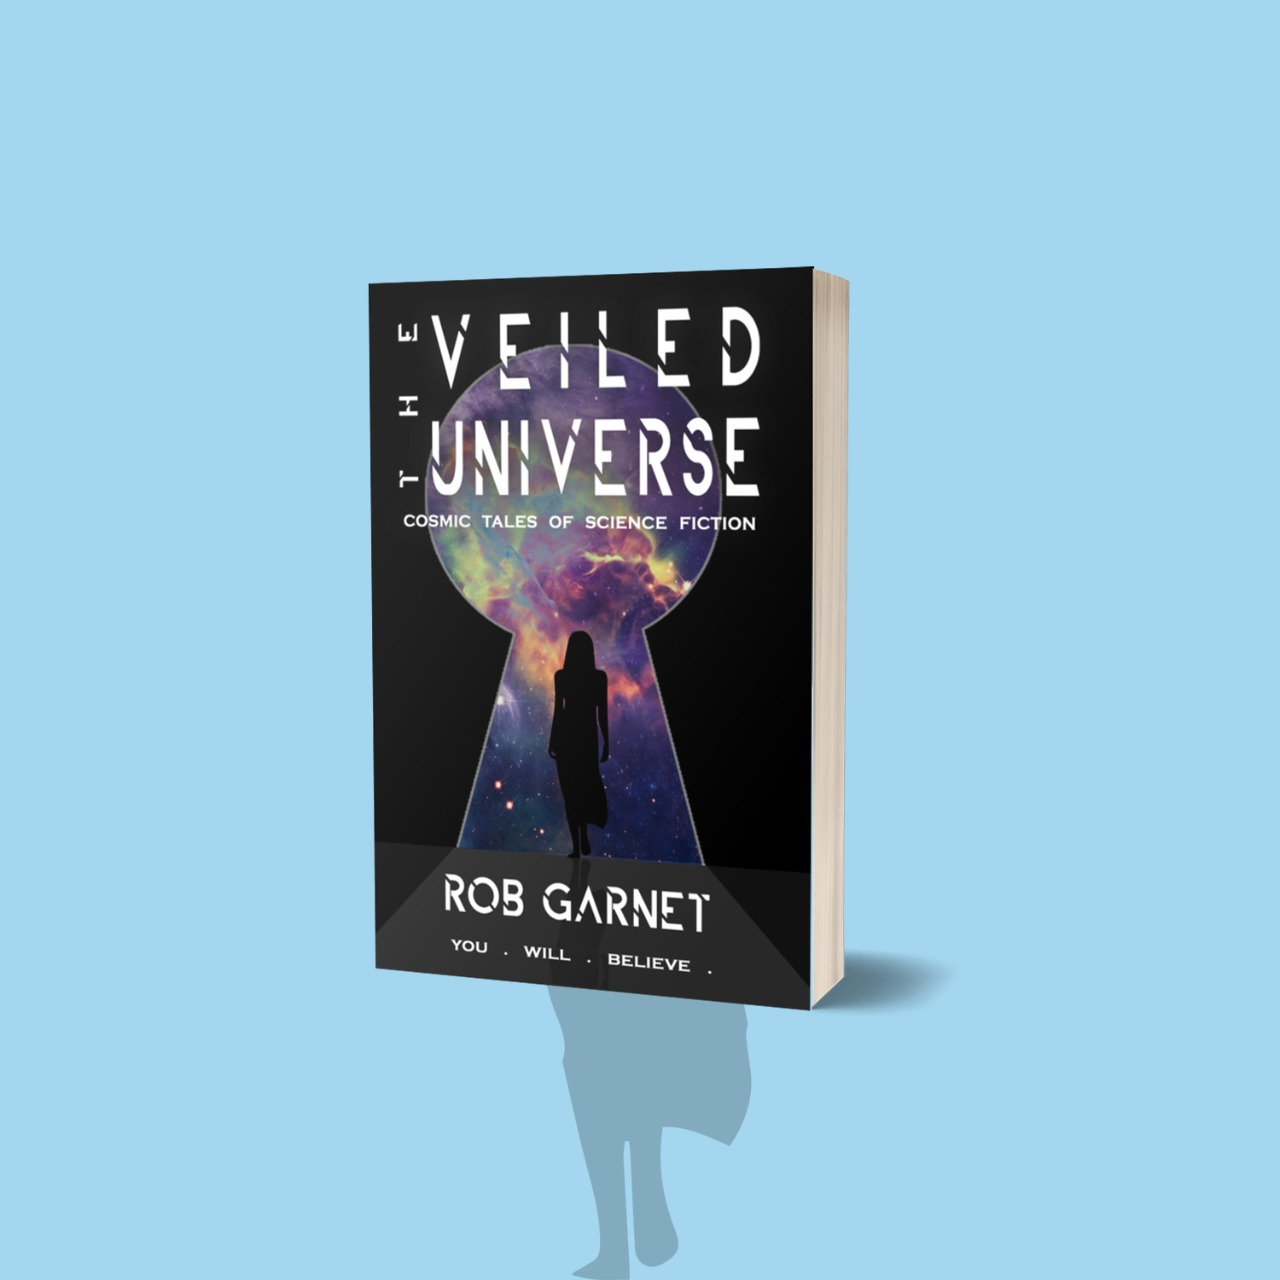 The Veiled Universe